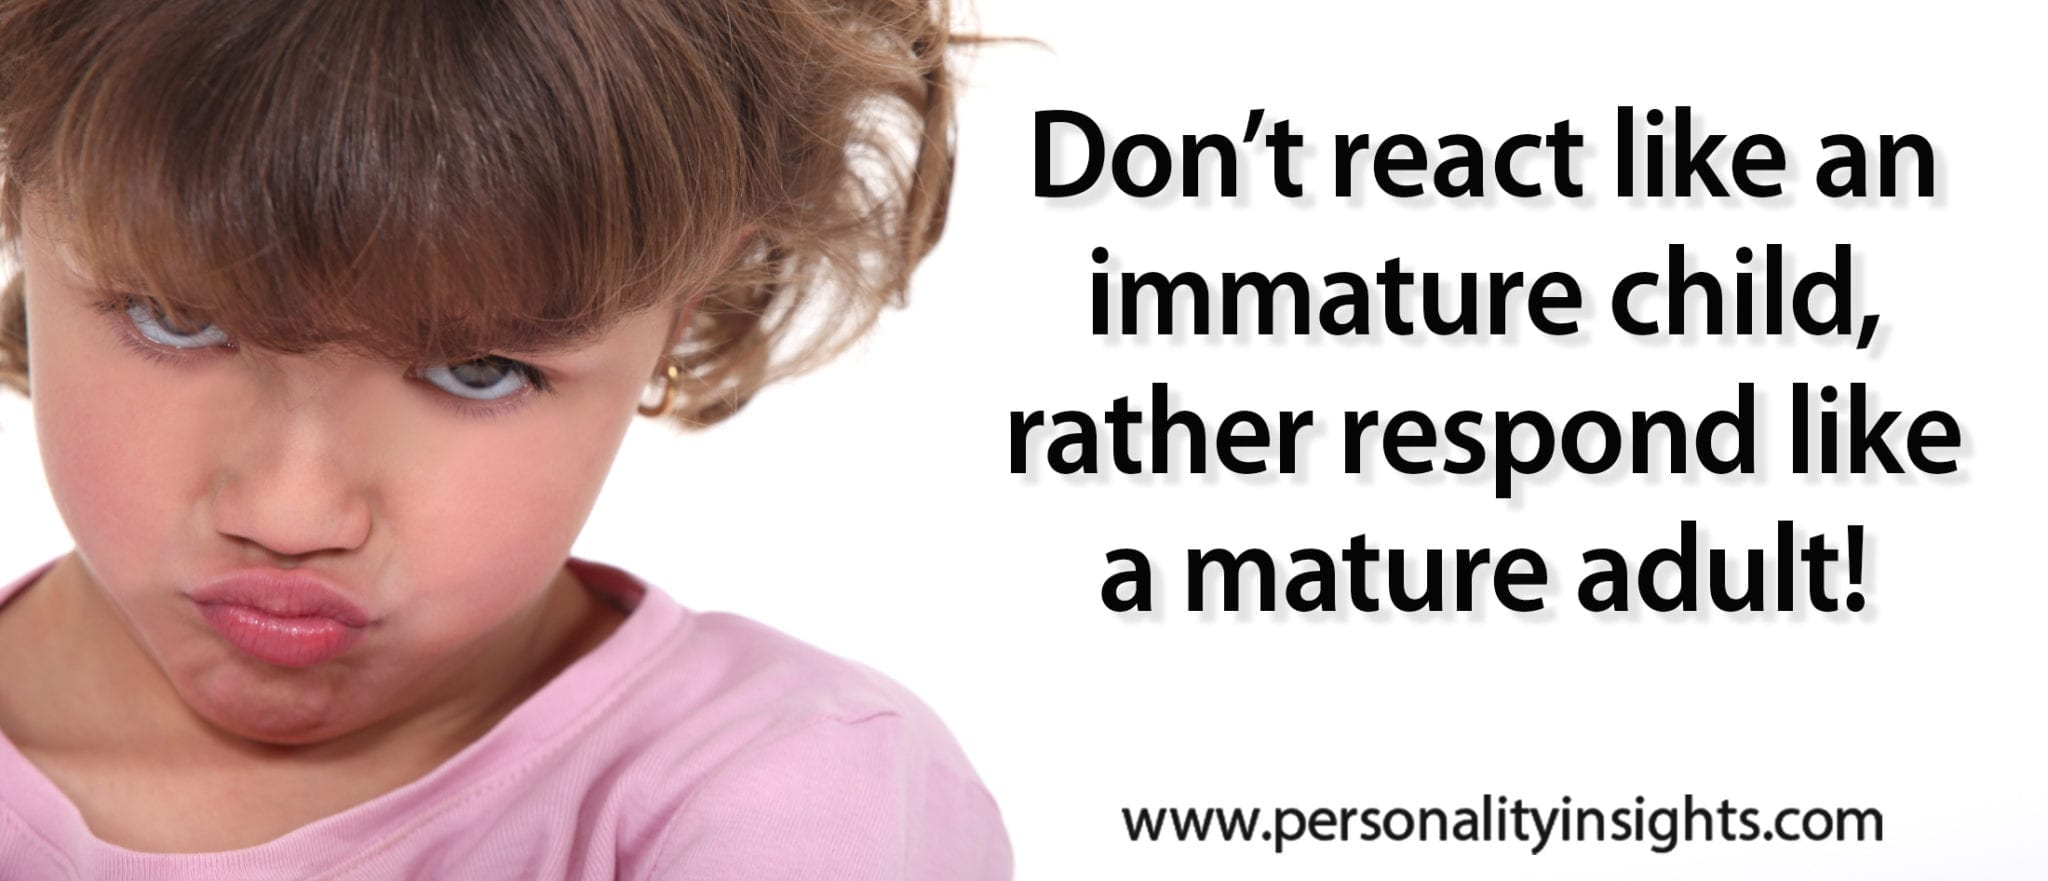 Tip: Don't react like an immature child, rather respond like a mature adult!